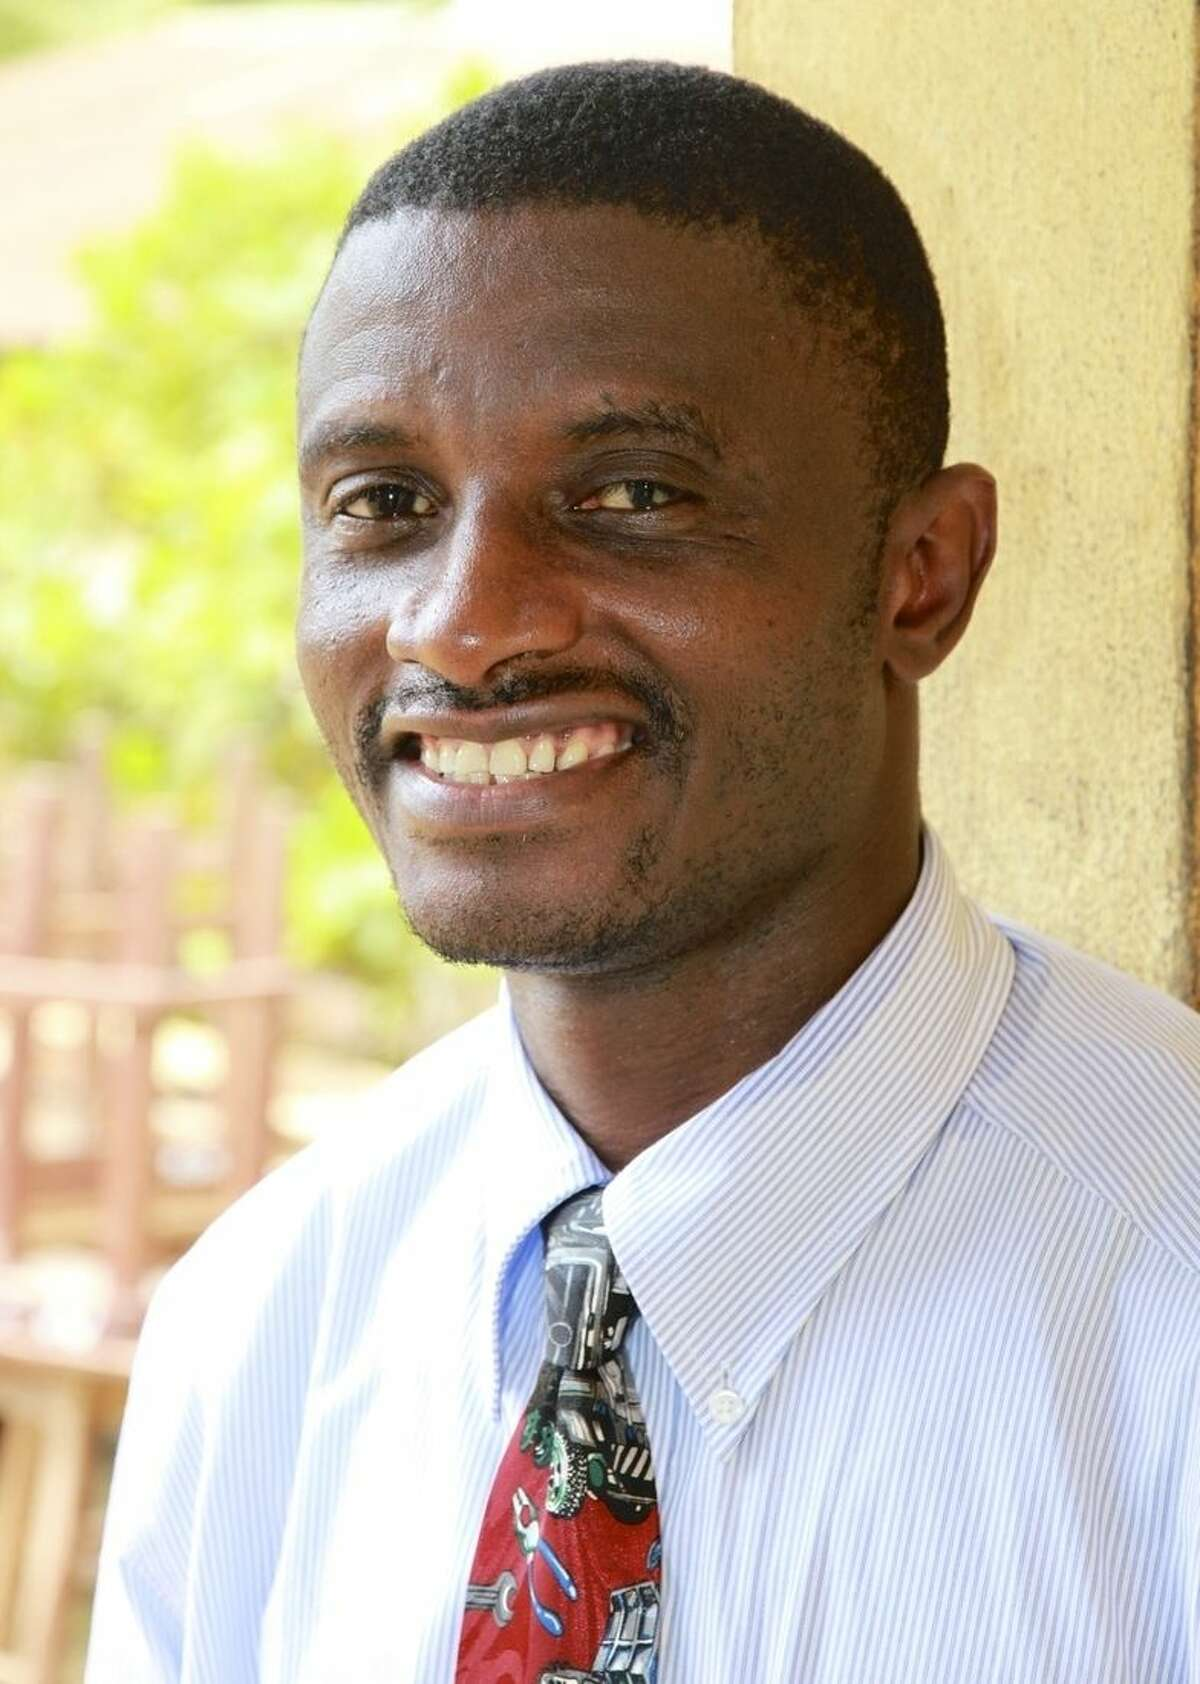 This handout photo provided by United Brethren in Christ, taken in 2013 shows Dr. Martin Salia. Salia, an African surgeon who is coming to the U.S. for treatment after contracting the Ebola virus received much of his surgical training through Christian missionary groups. Martin Salia is a citizen of Sierra Leone, though his family lives in Maryland as permanent U.S. residents. (AP Photo/Jeff Bleijerveld, United Brethren in Christ)